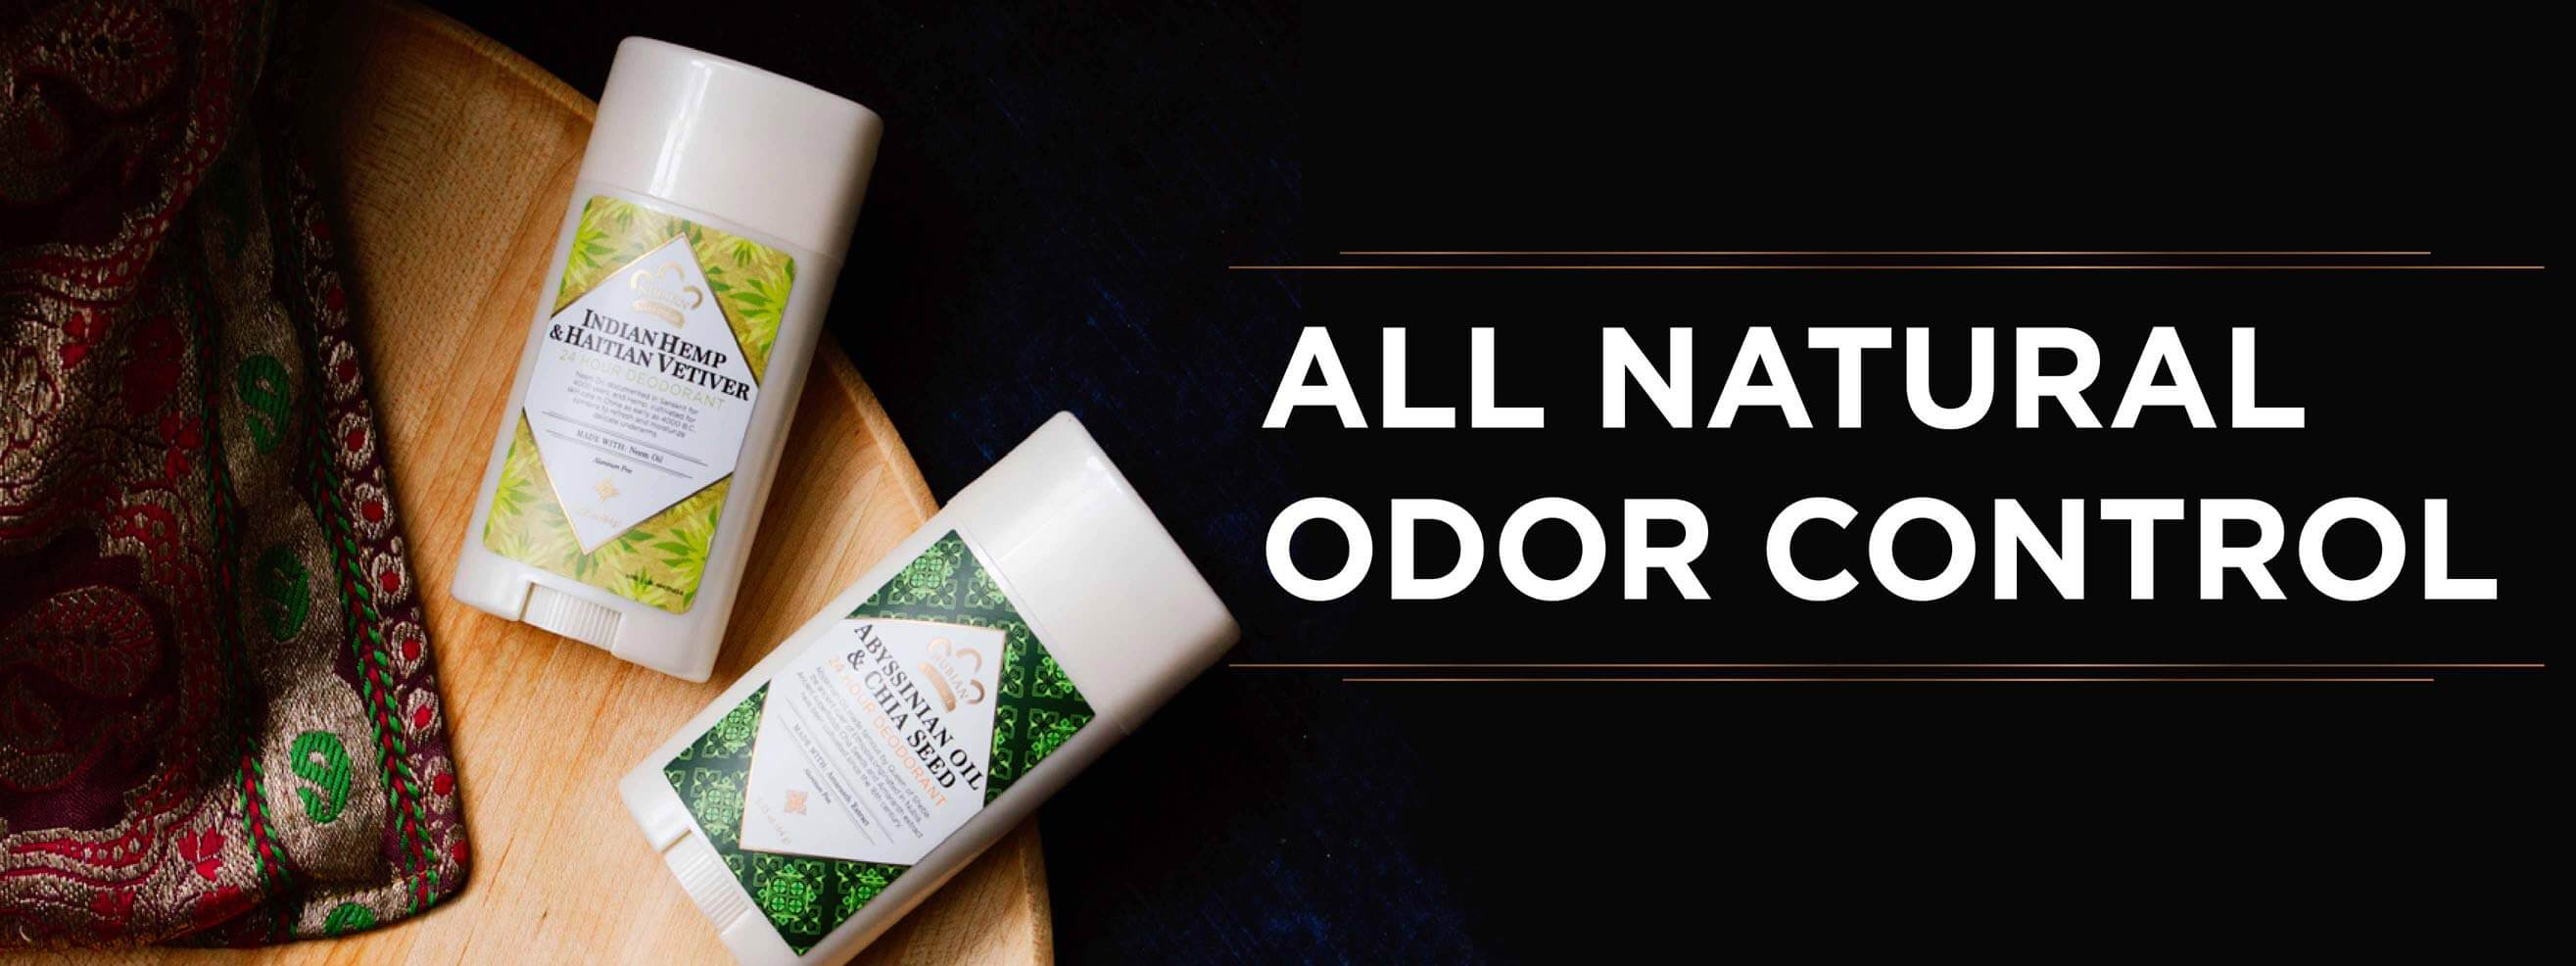 All Natural Odor Control